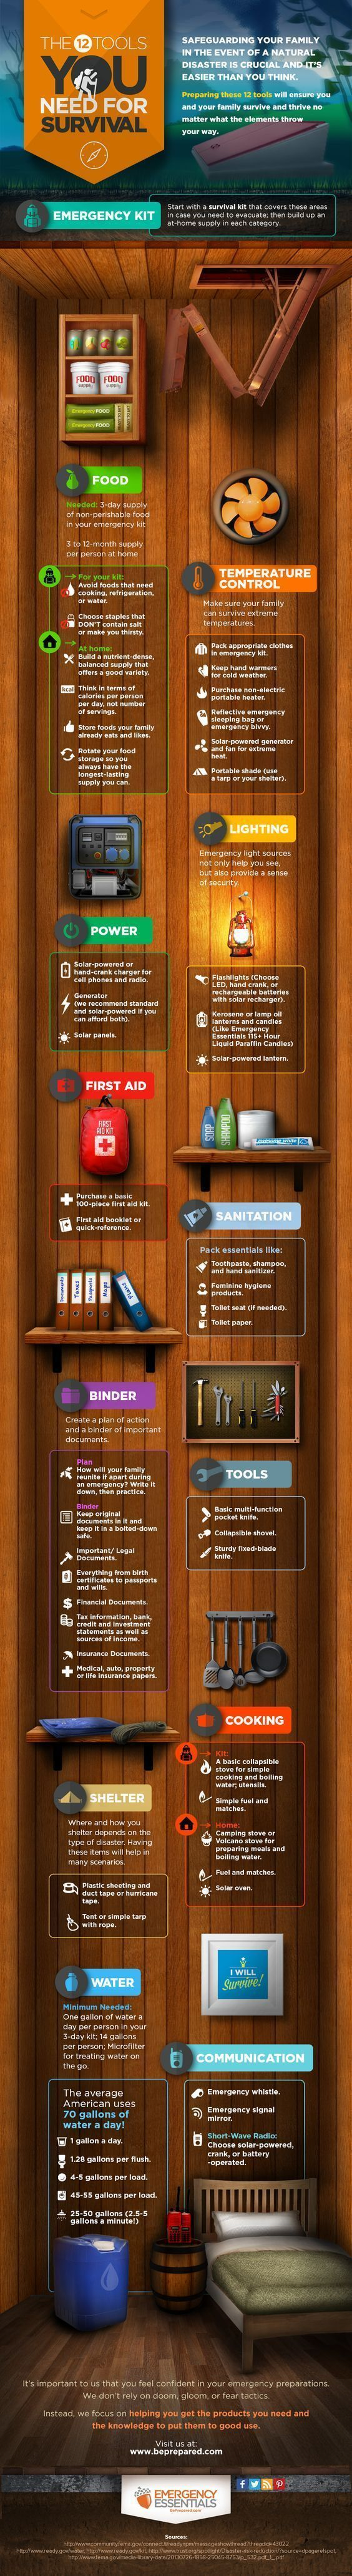 12 Tools Your Need to Survive | Make Sure You're Stocked Up on These Survival Essentials by Survival Life at survivallife.com/...